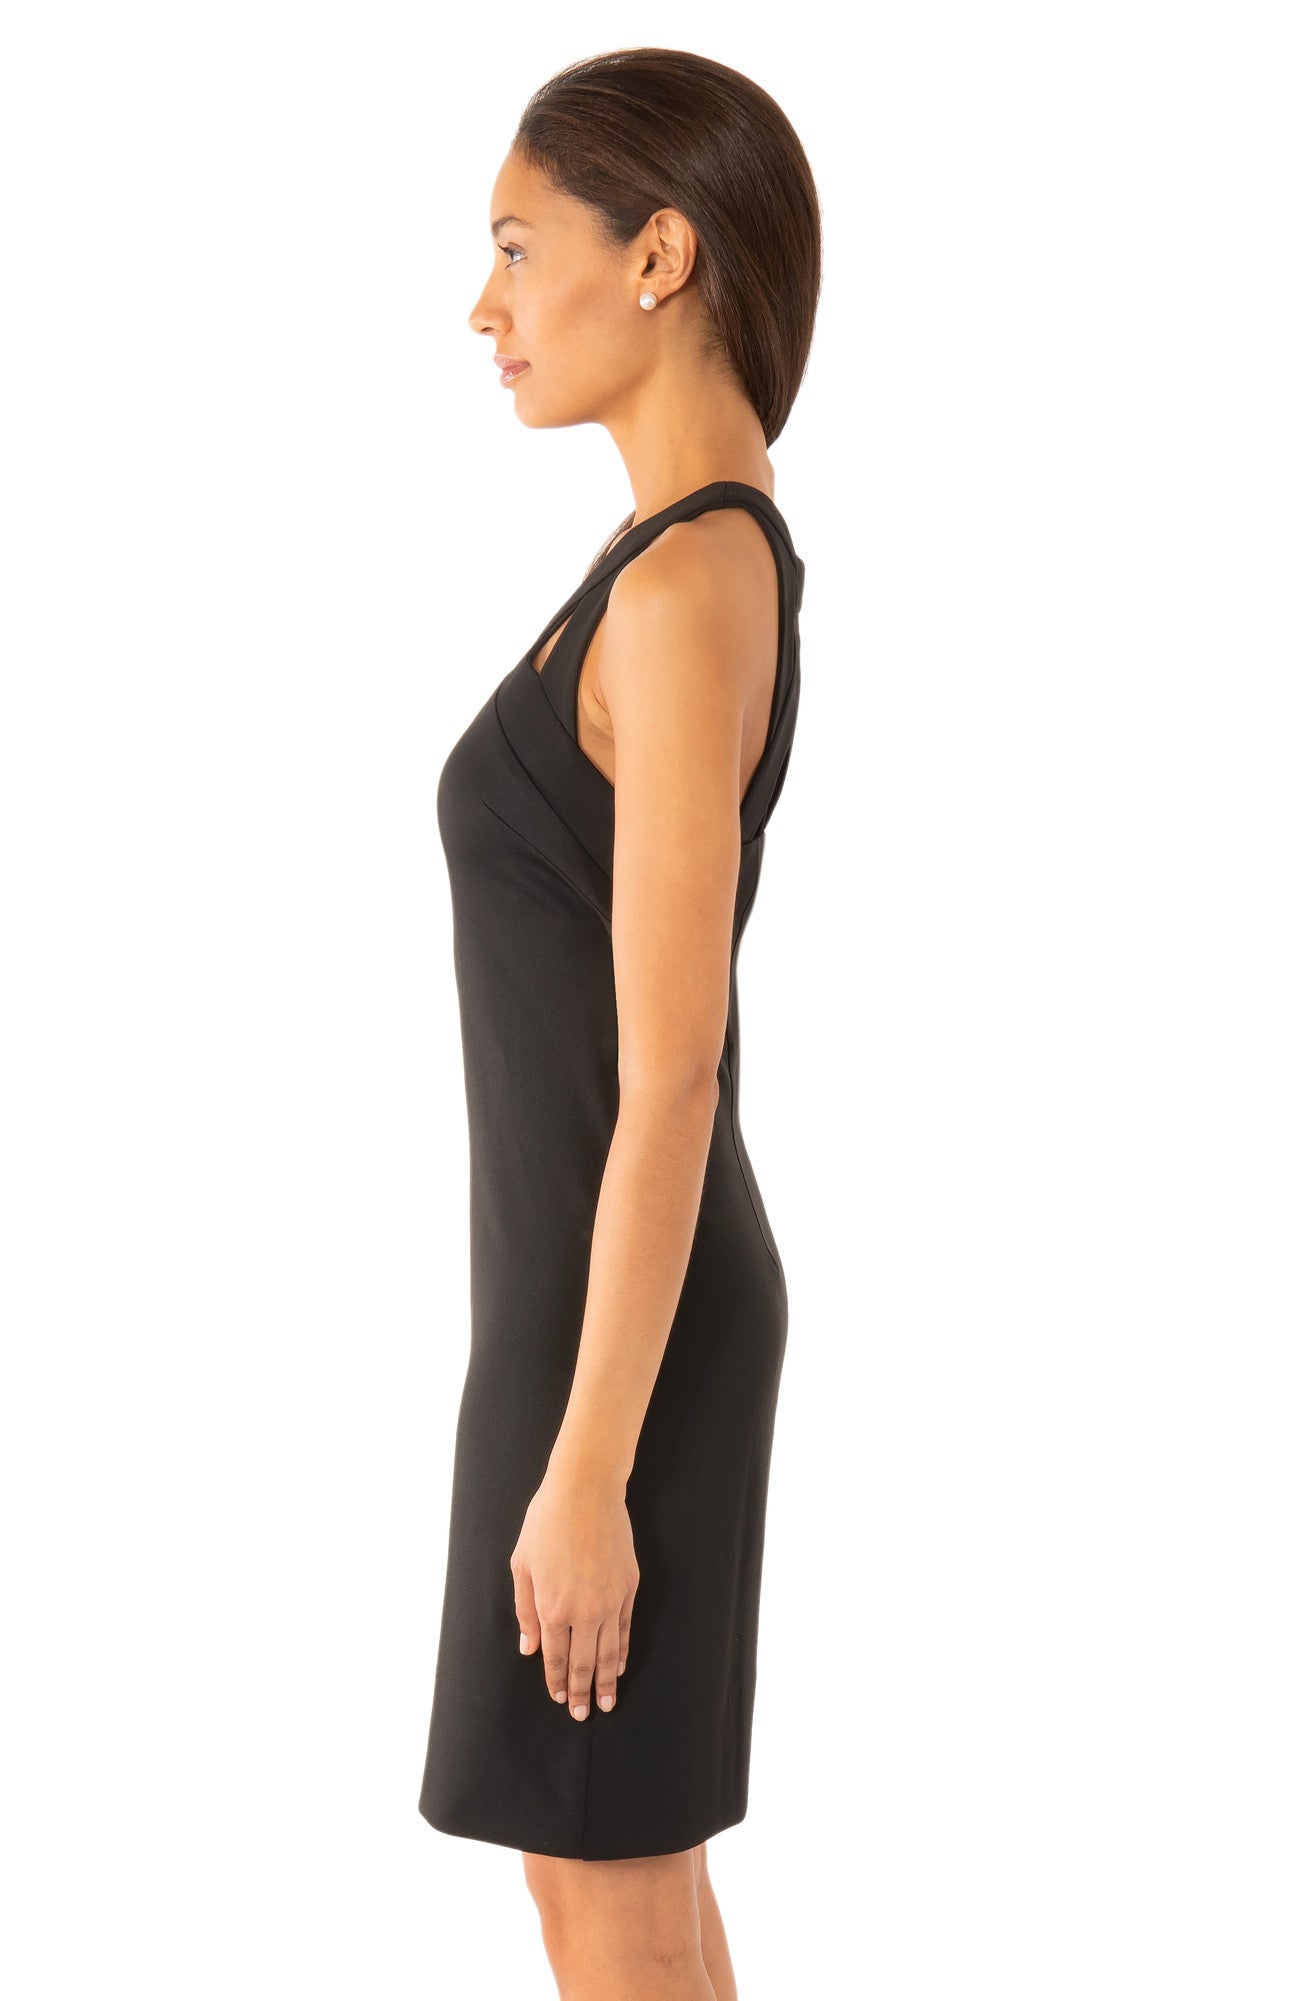 Gretchen Scott Isosceles Jersey Dress - Solid Black